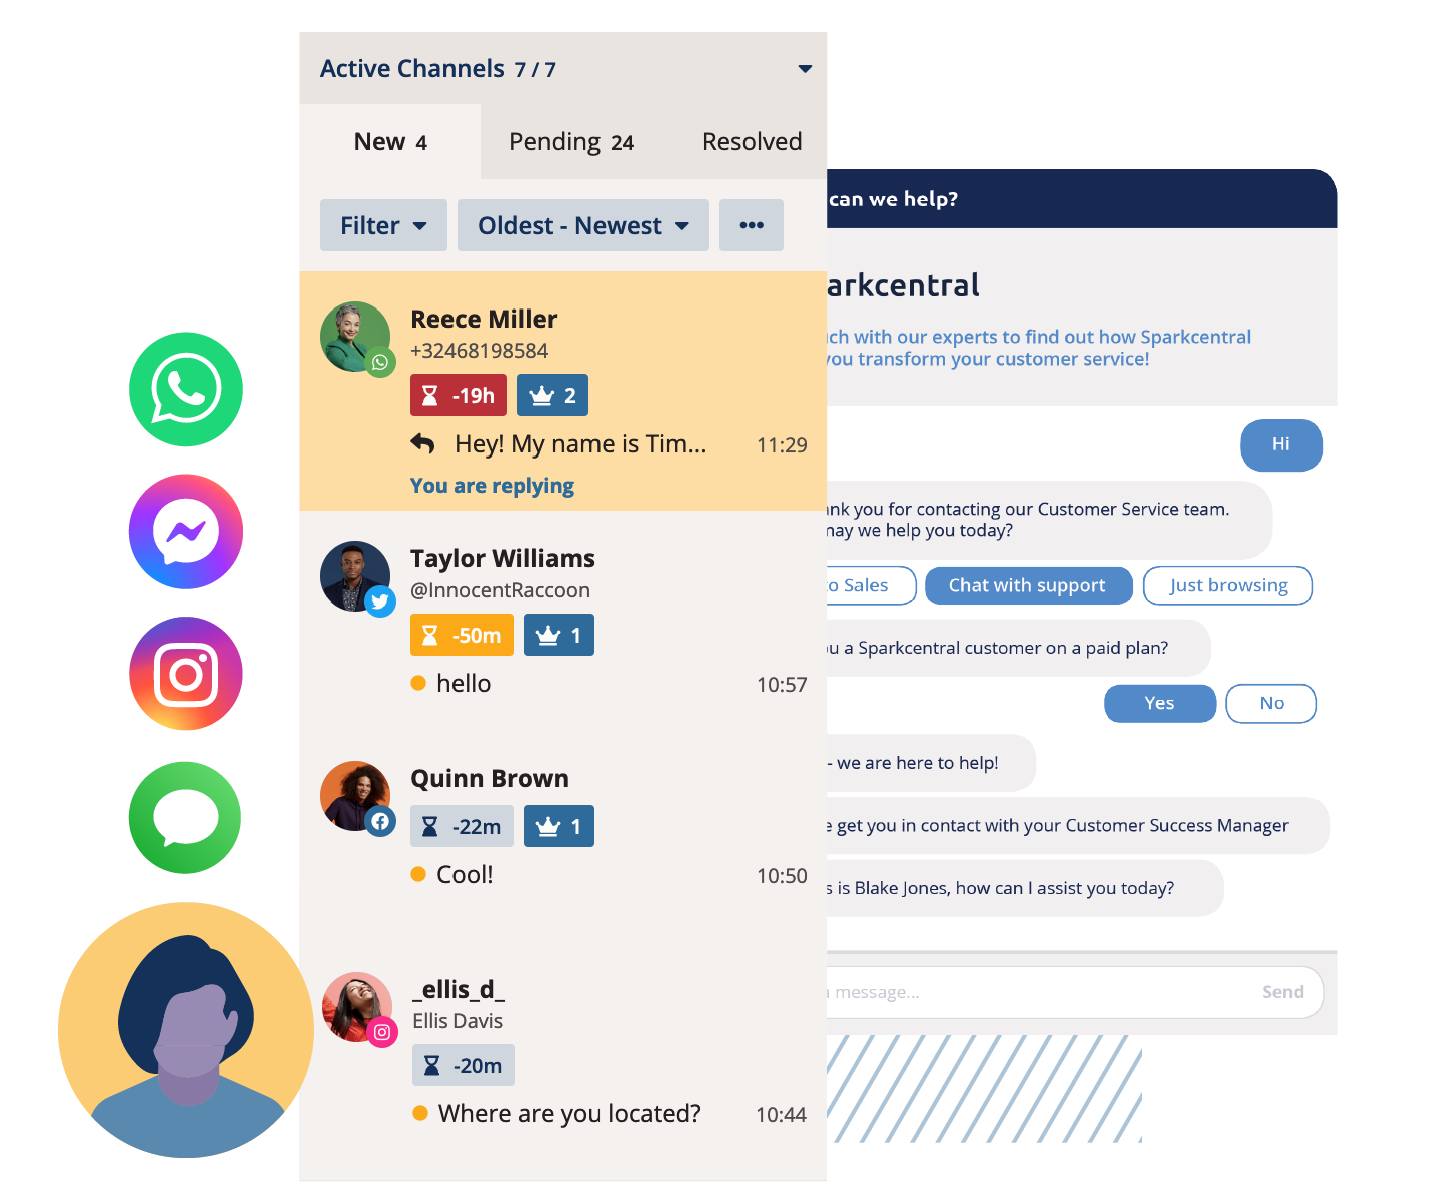 Sparkcentral Software - Centralized Customer Care - Manage all channels in one universal queue with Sparkcentral's easy-to-use Agent Desktop.